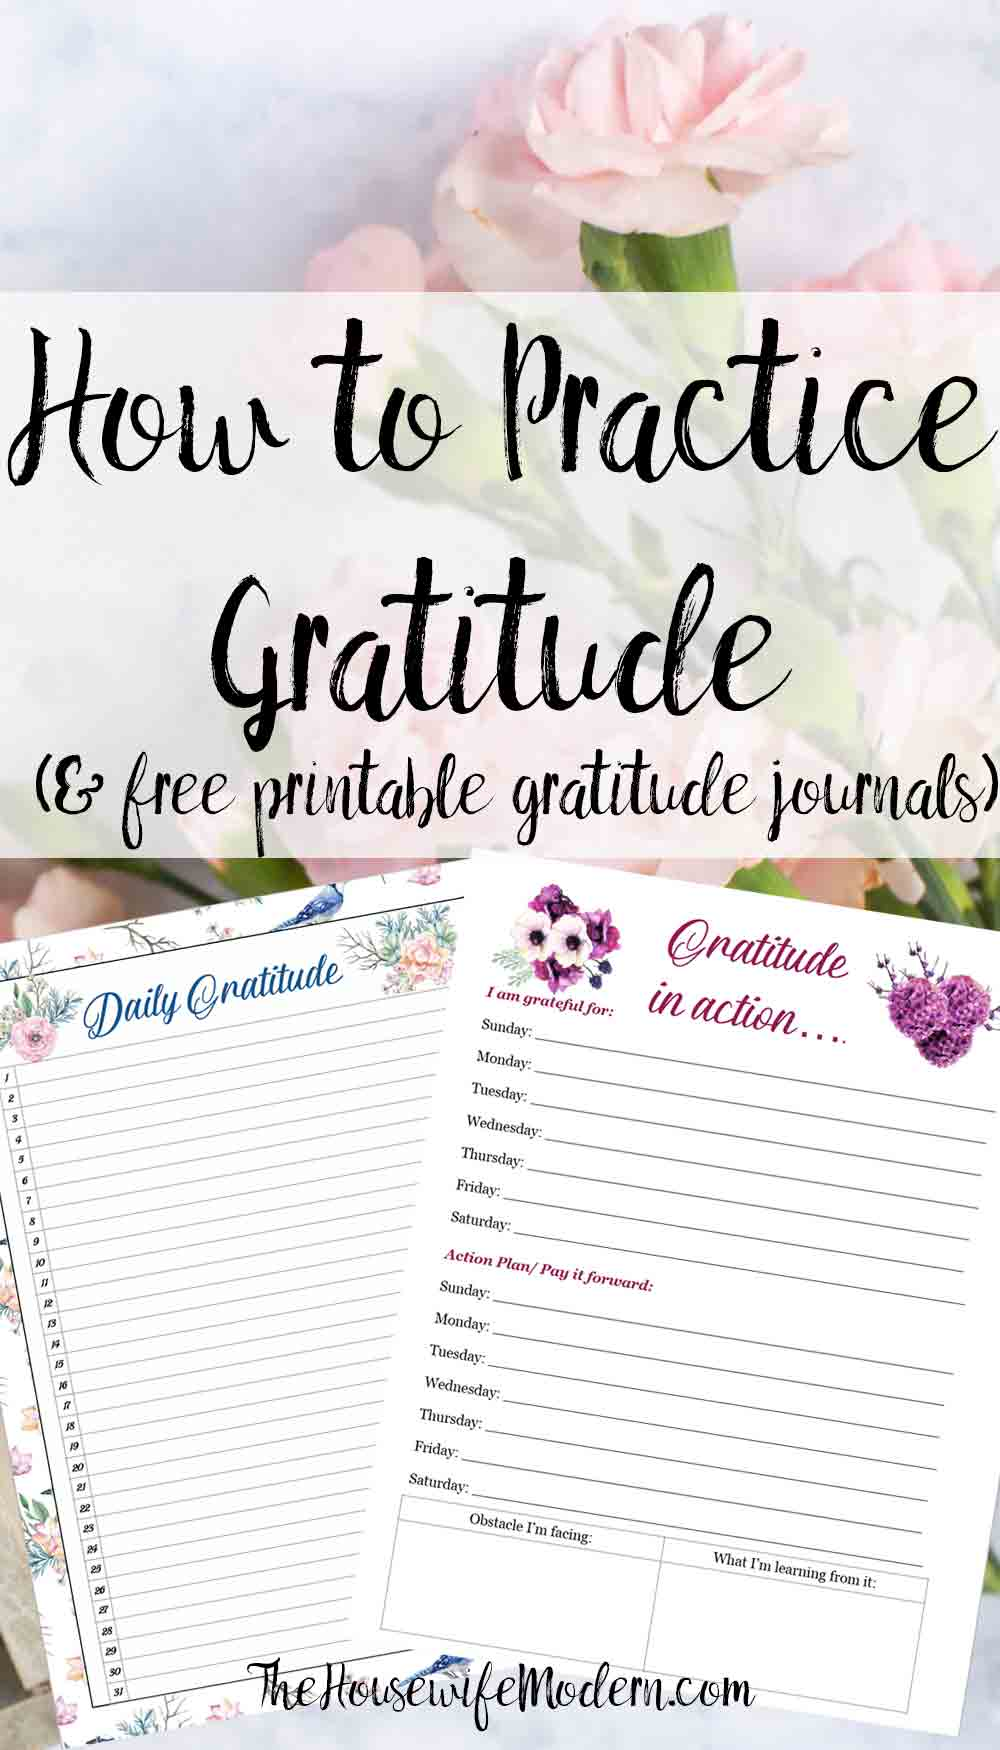 How to practice gratitude. Practical steps and instructions. Why gratitude should be part of your daily life. Plus free printable daily gratitude journal (2 designs).